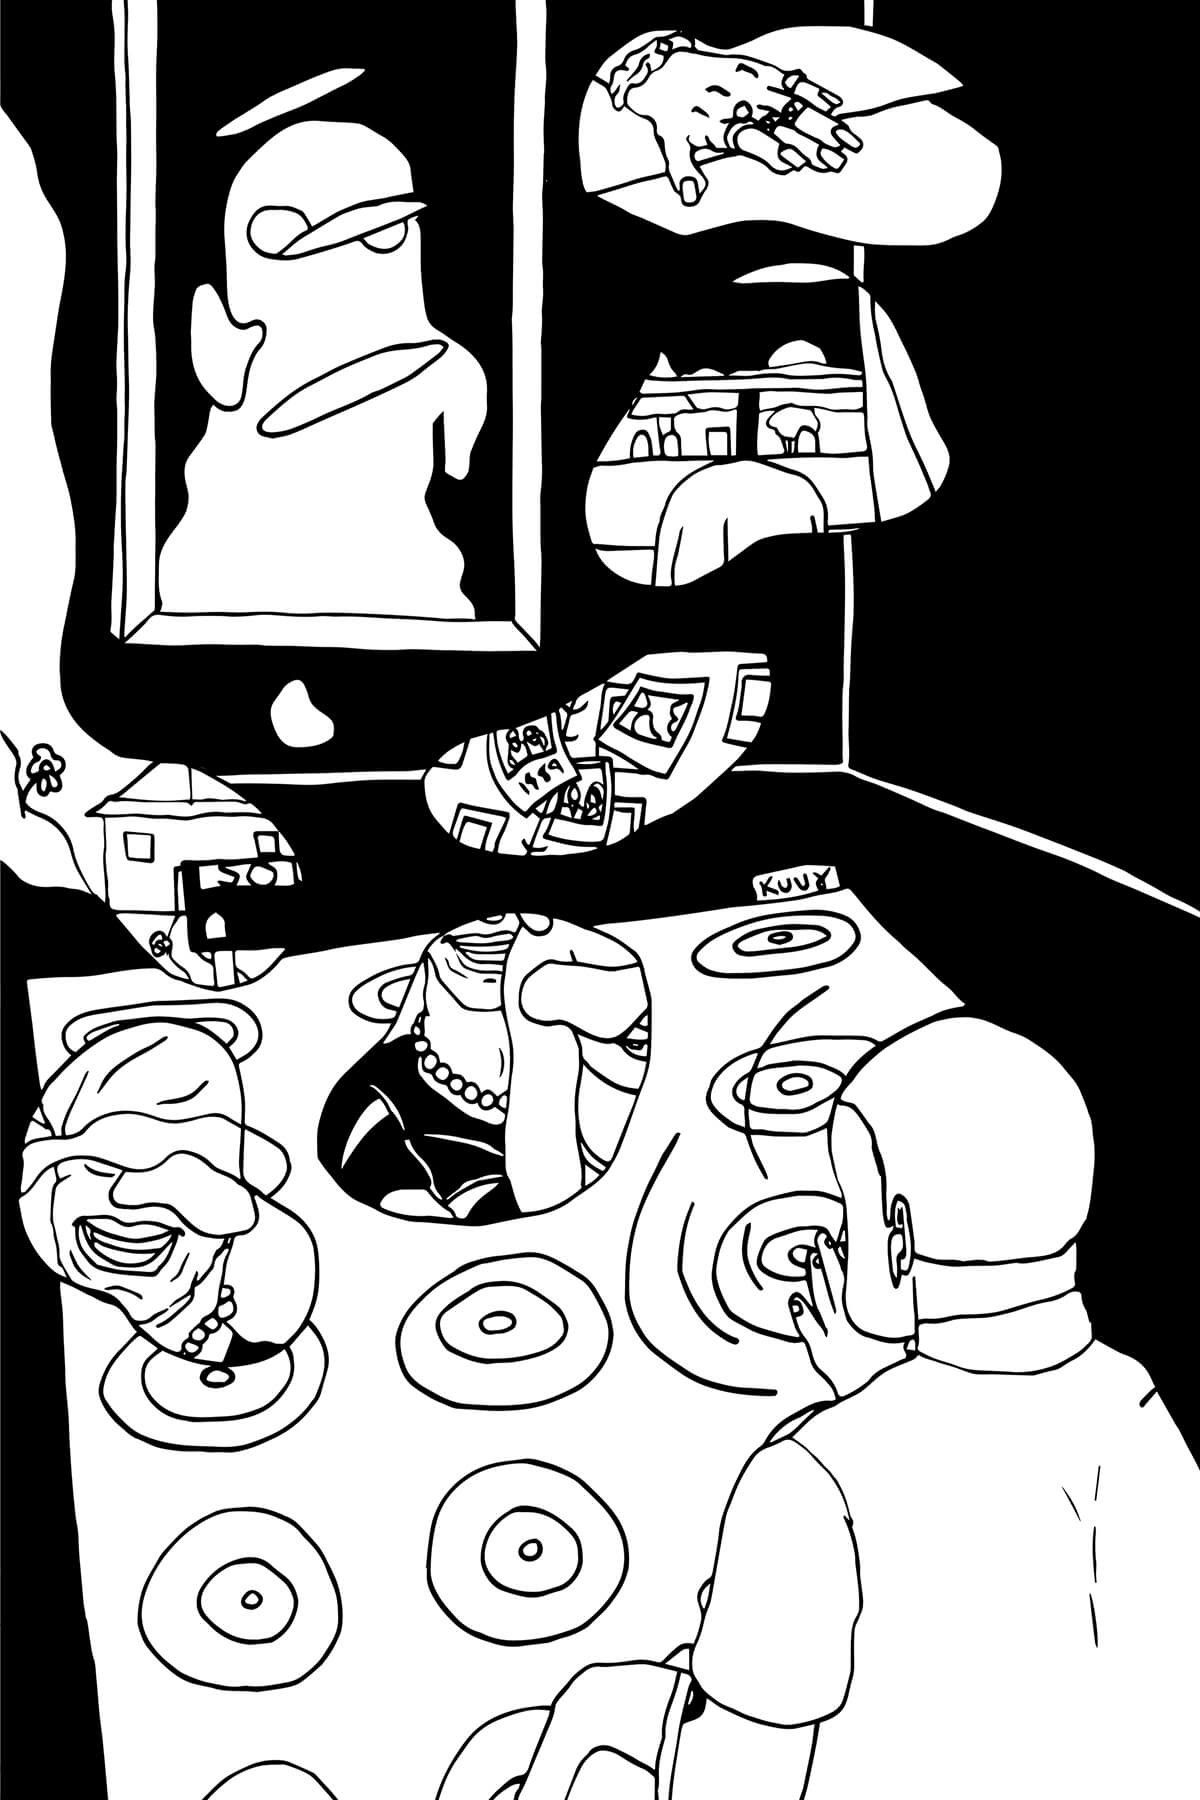 A black and white drawing of a person spinning LPs in a darkened room. There are many records pictured, and from many of them bubbles arise that have small drawings of memories inside.